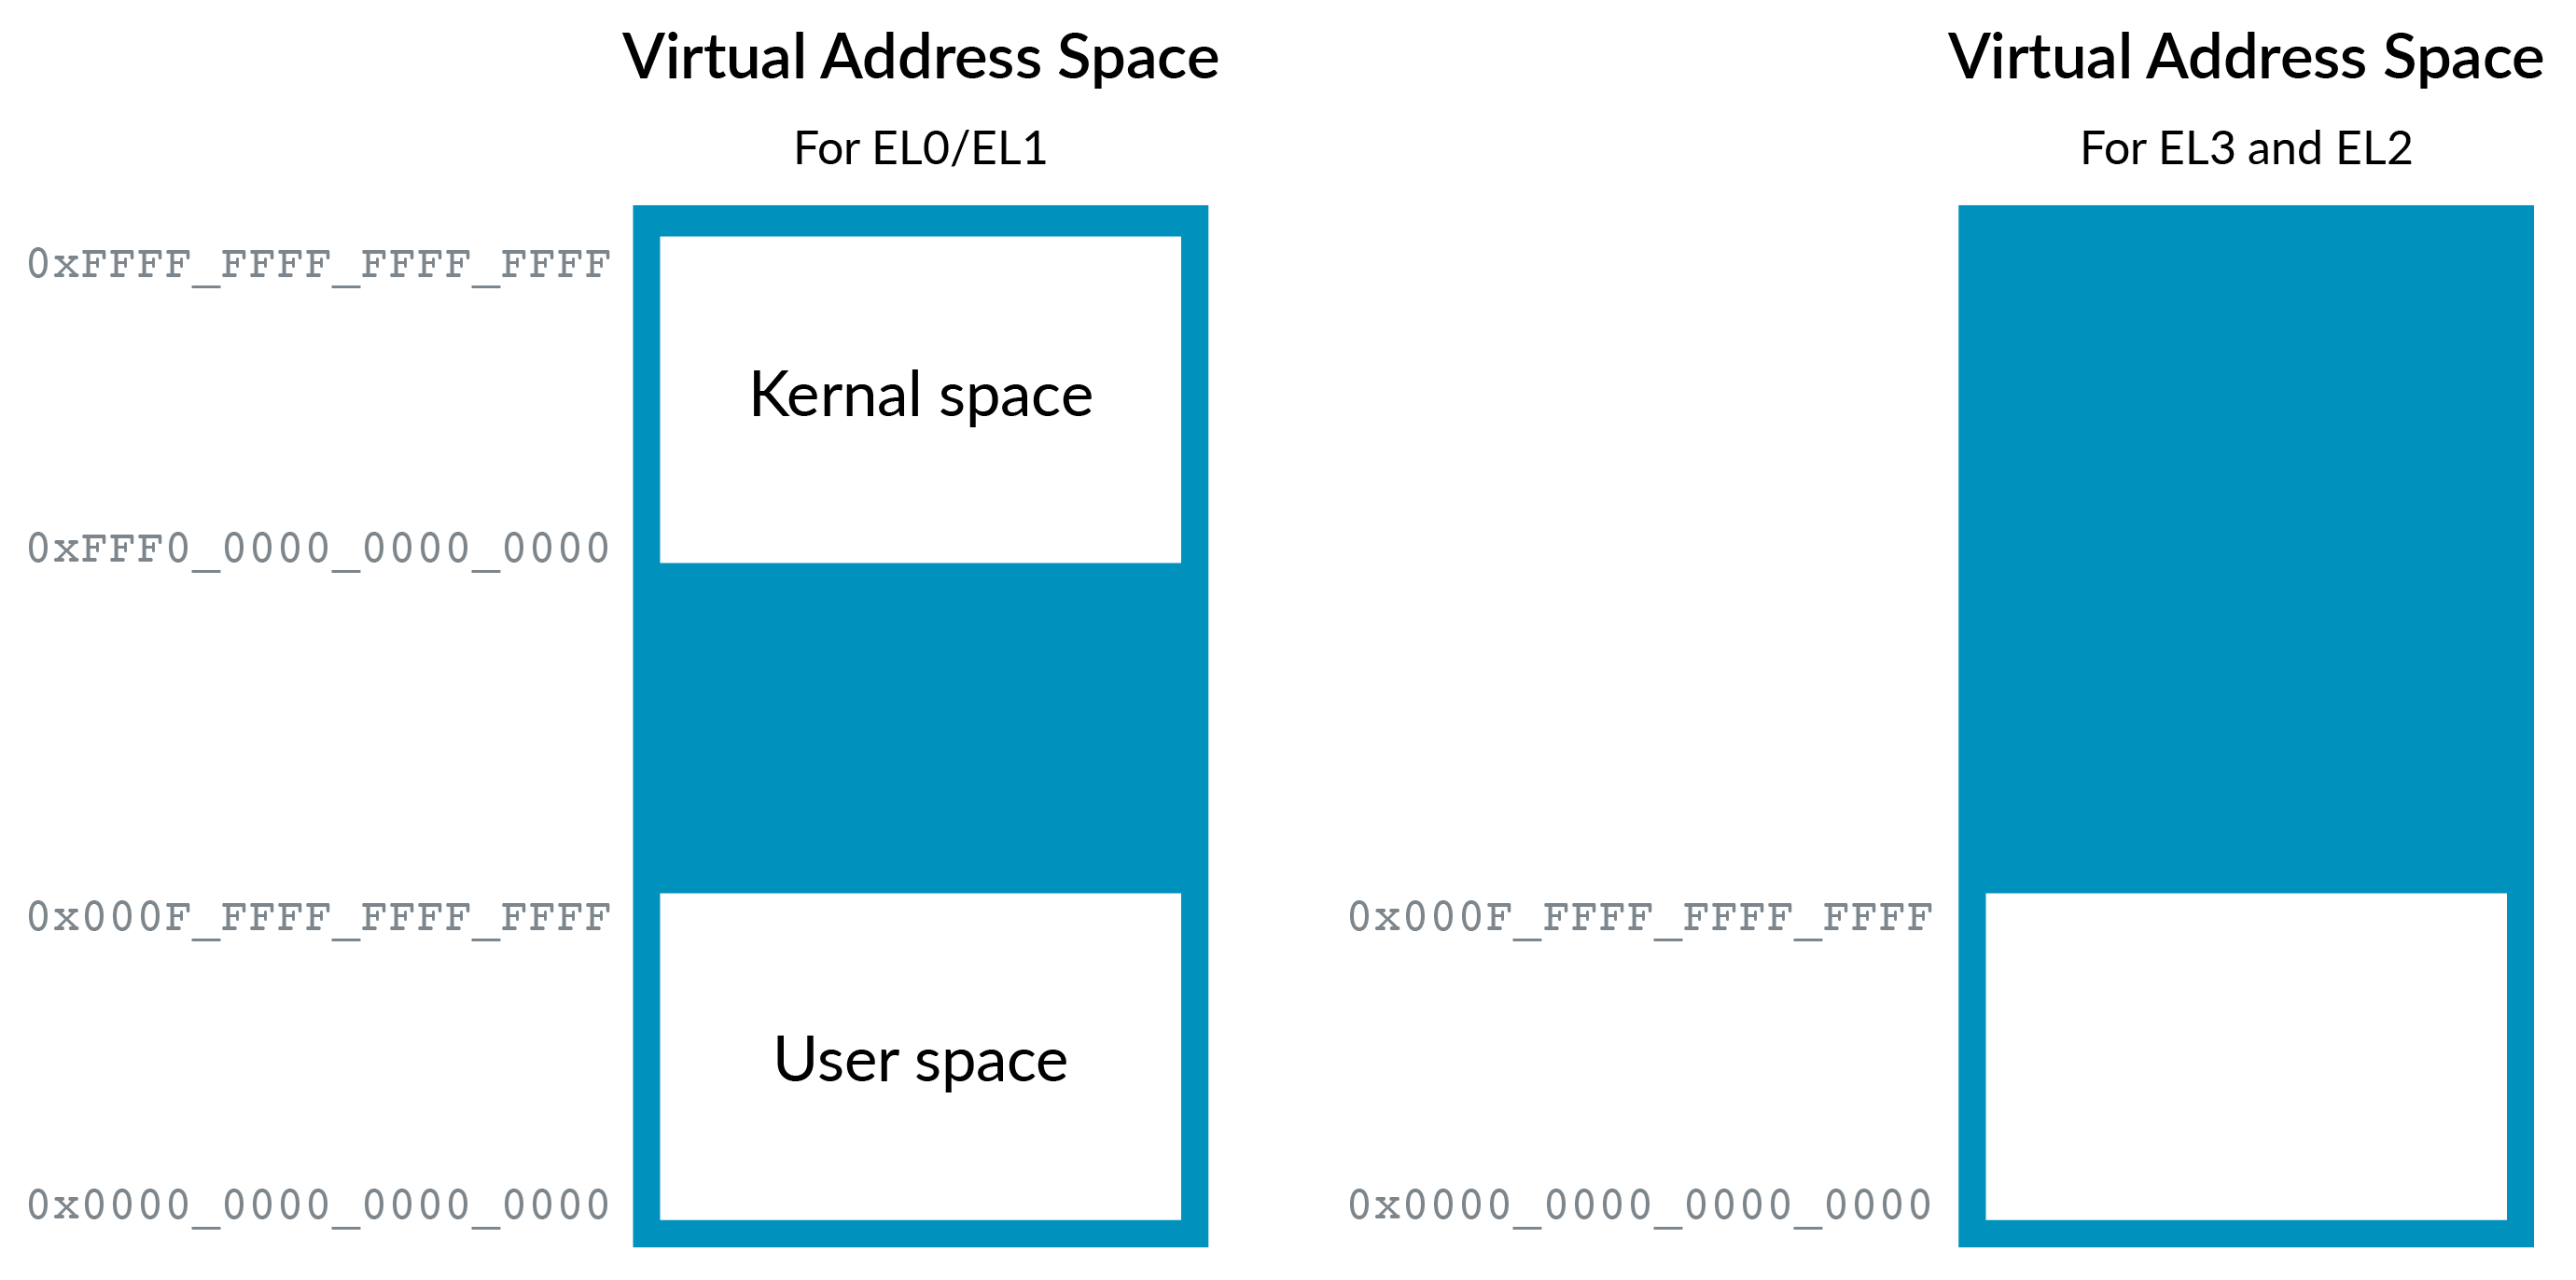 The EL01 and EL2 virtual address spaces pre VHE